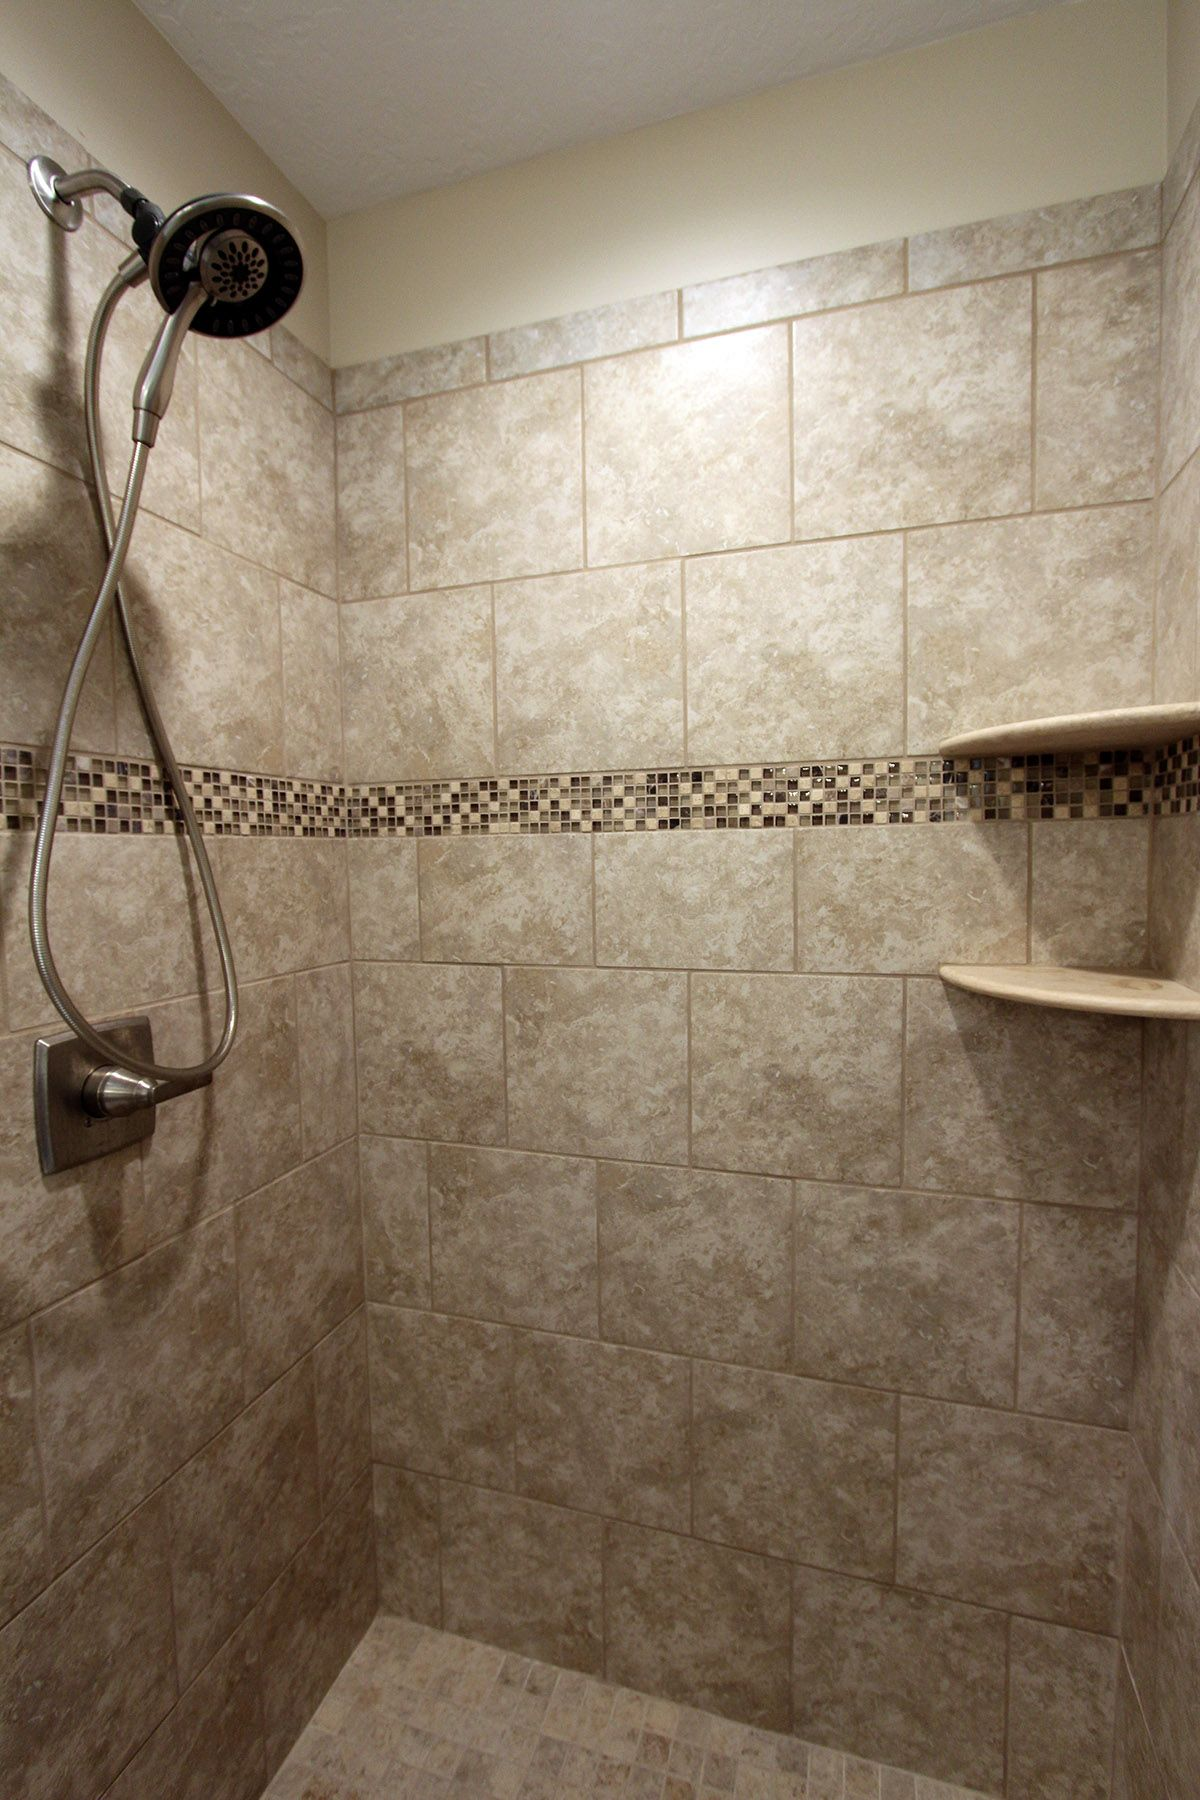 Tile Heathland White Rock 12x12 Sunrise Blend 2x2 Cappucino Mosaic Shower Floor Tile Shower Tile Metal Building Homes